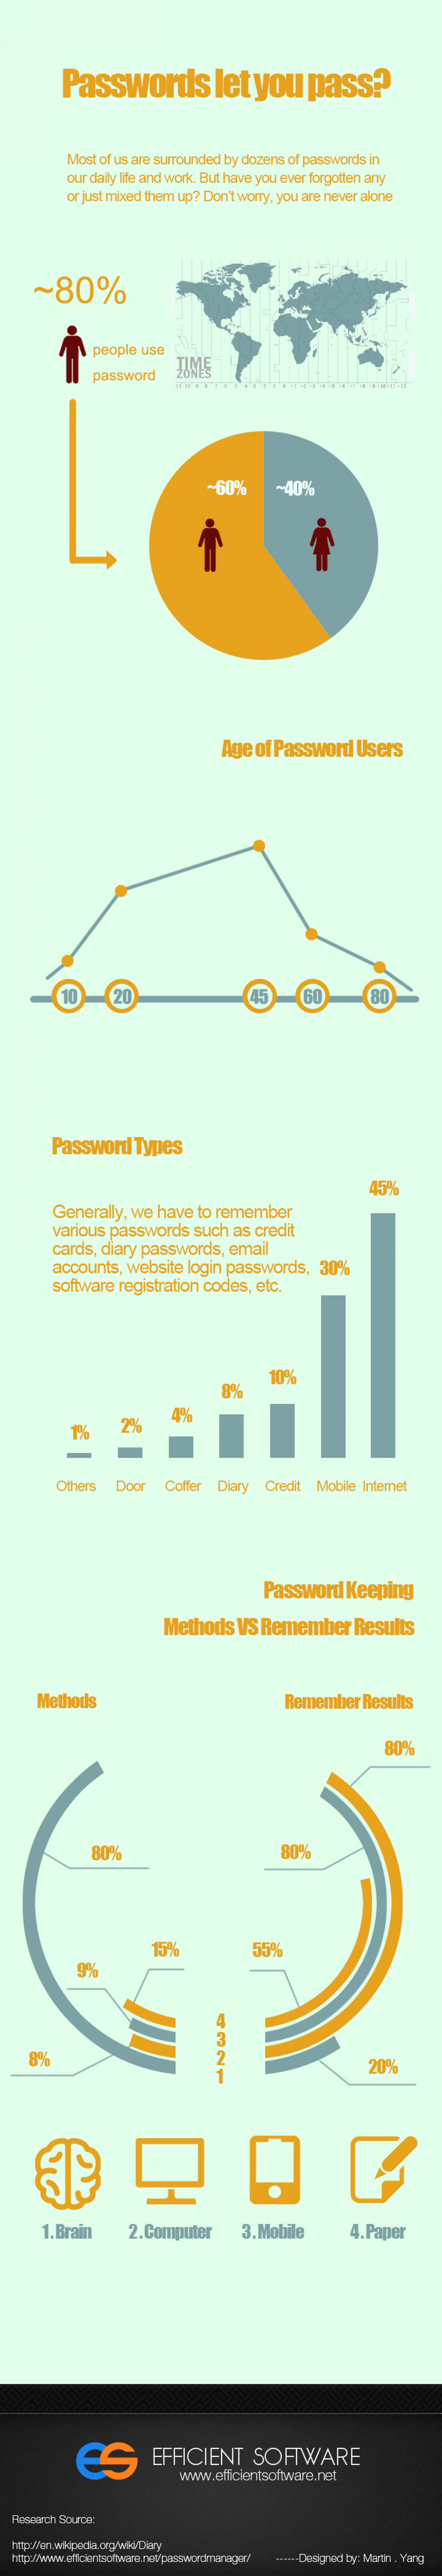 Passwords Let You Pass? Infographic